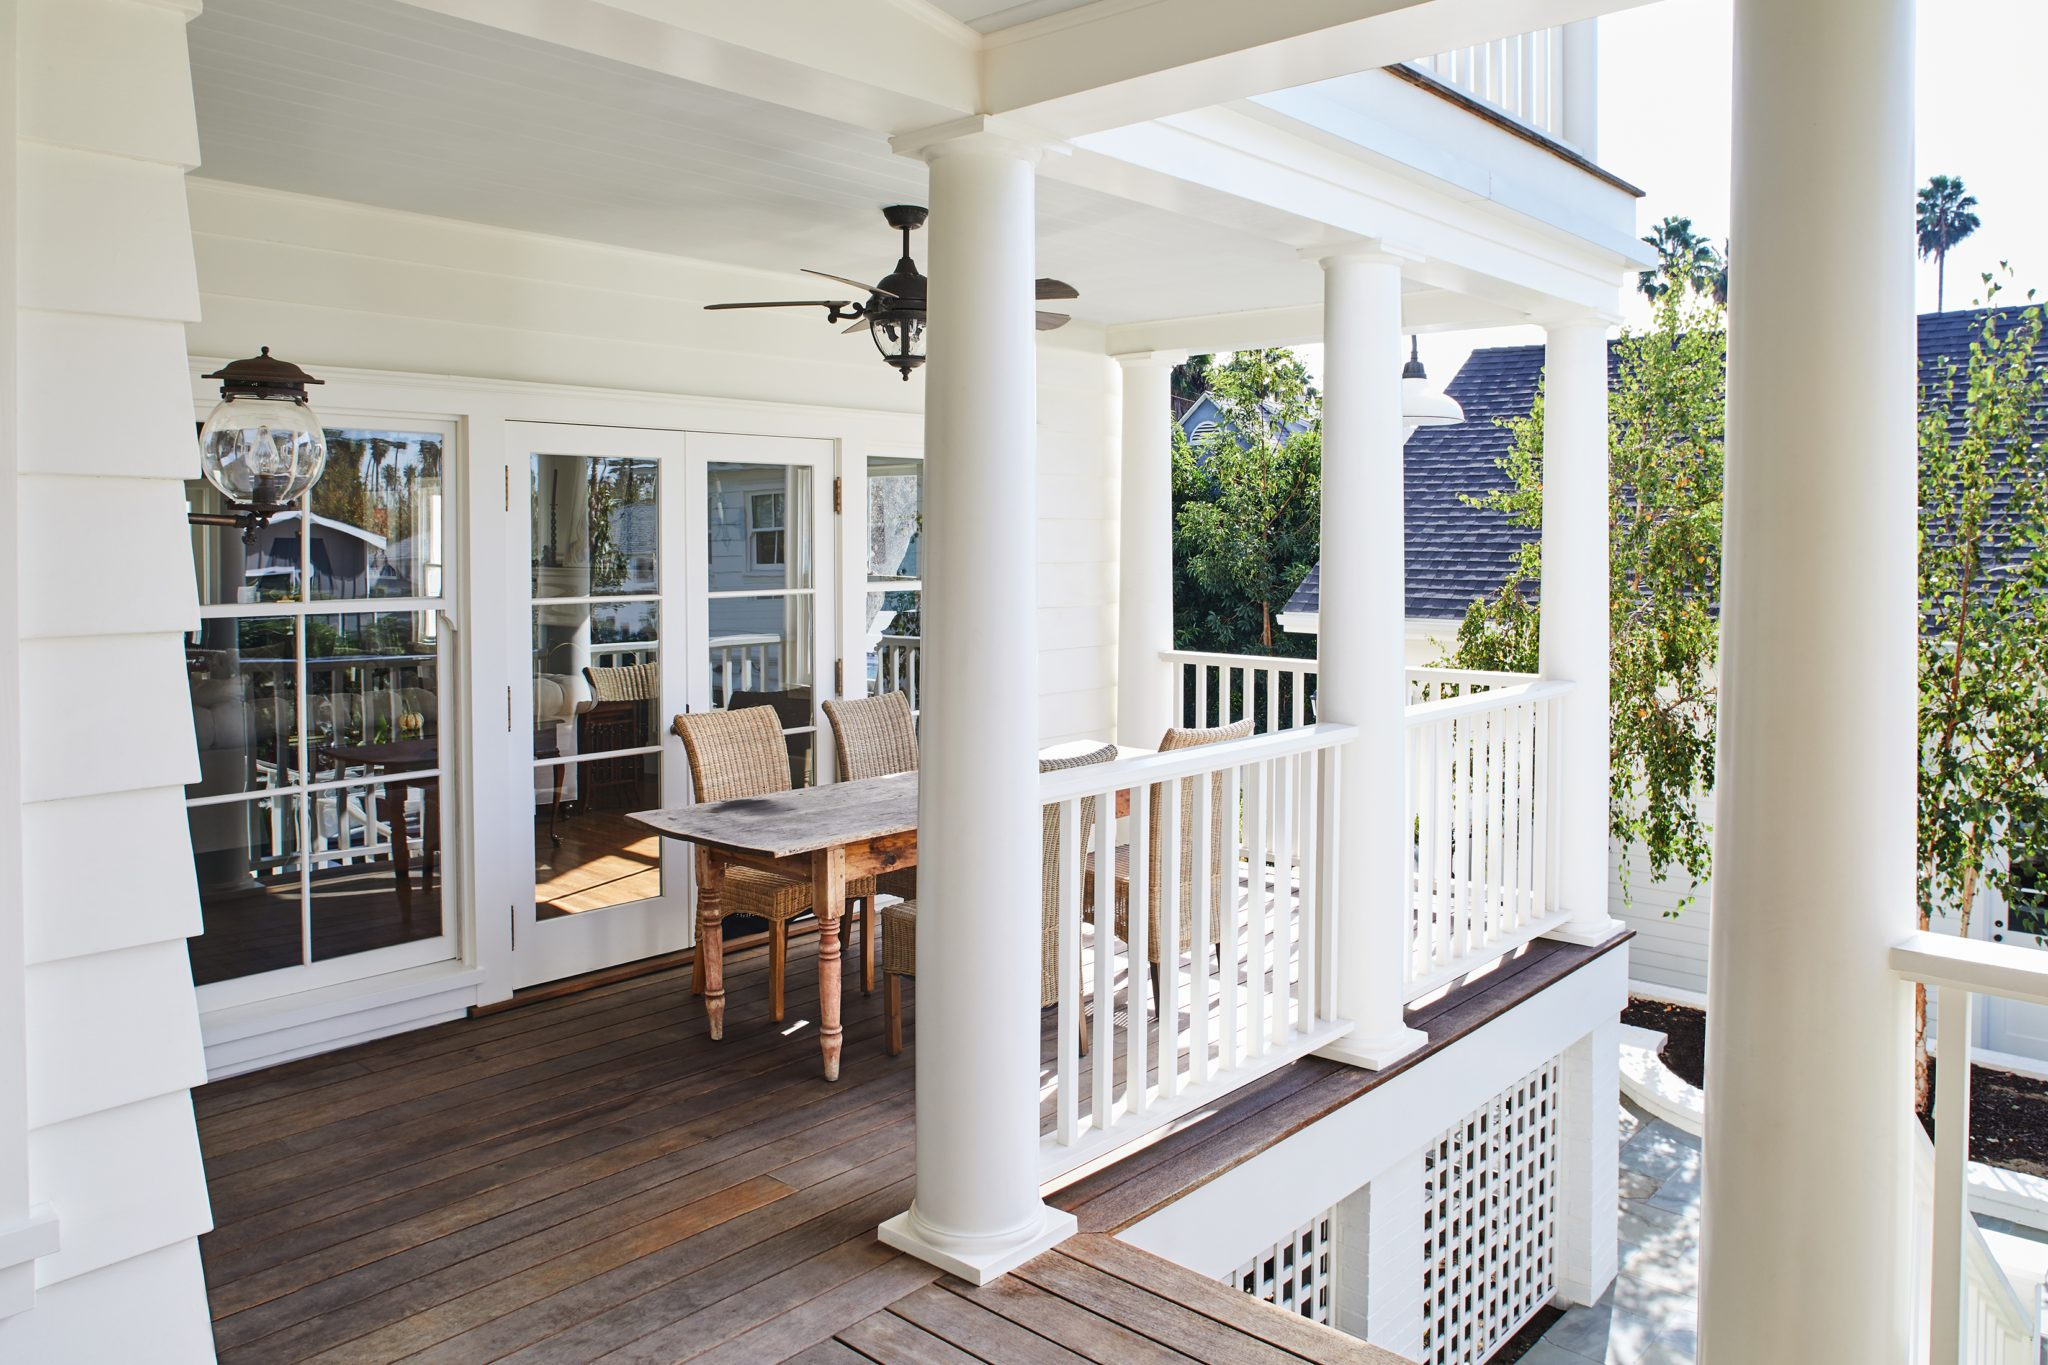 Covered back porch with columns of Southern Neoclassical style residence by Tim Barber Ltd.